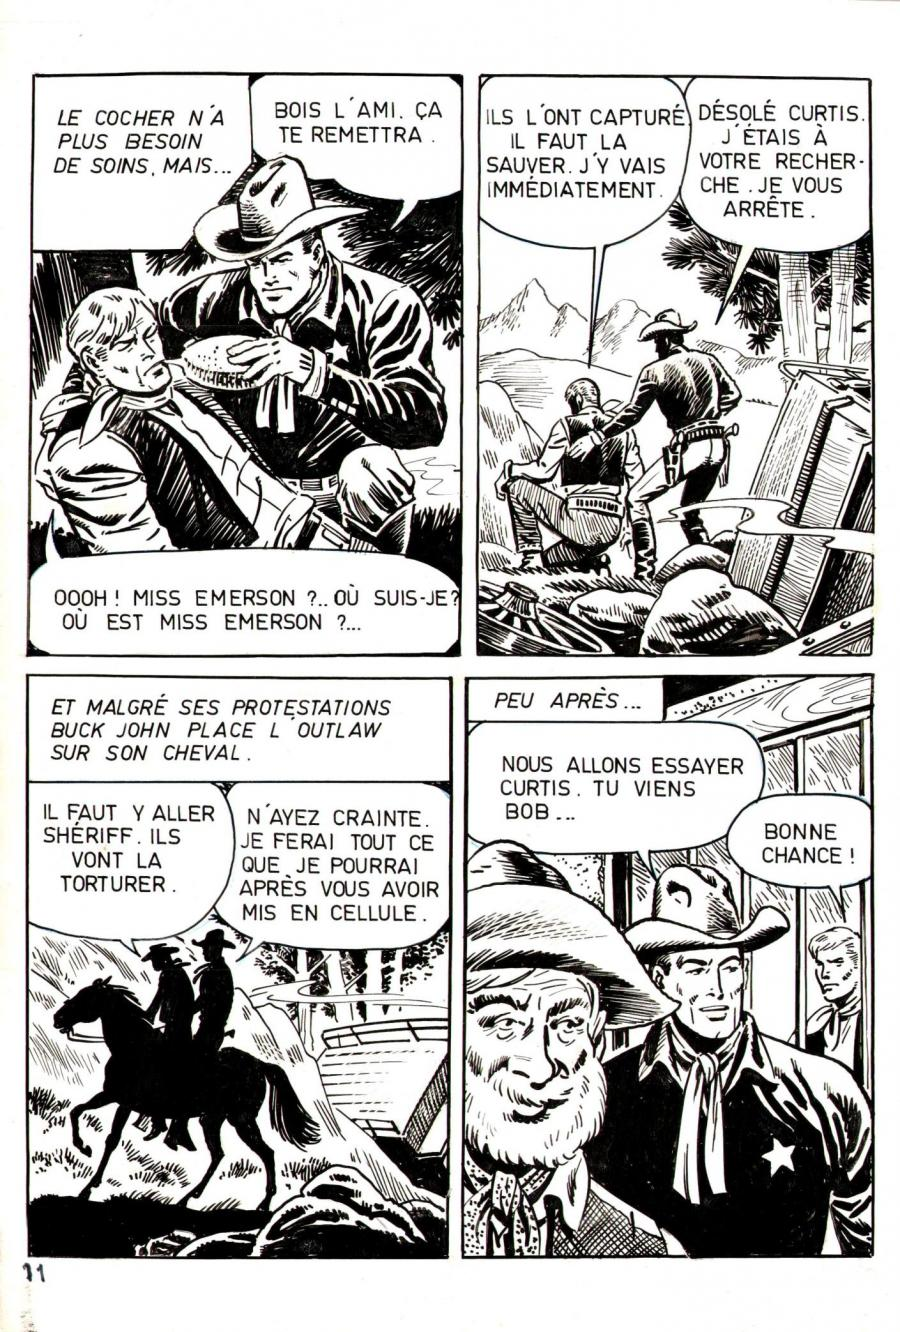 Robert LEGUAY's original comic art BUCK JOHN page 11